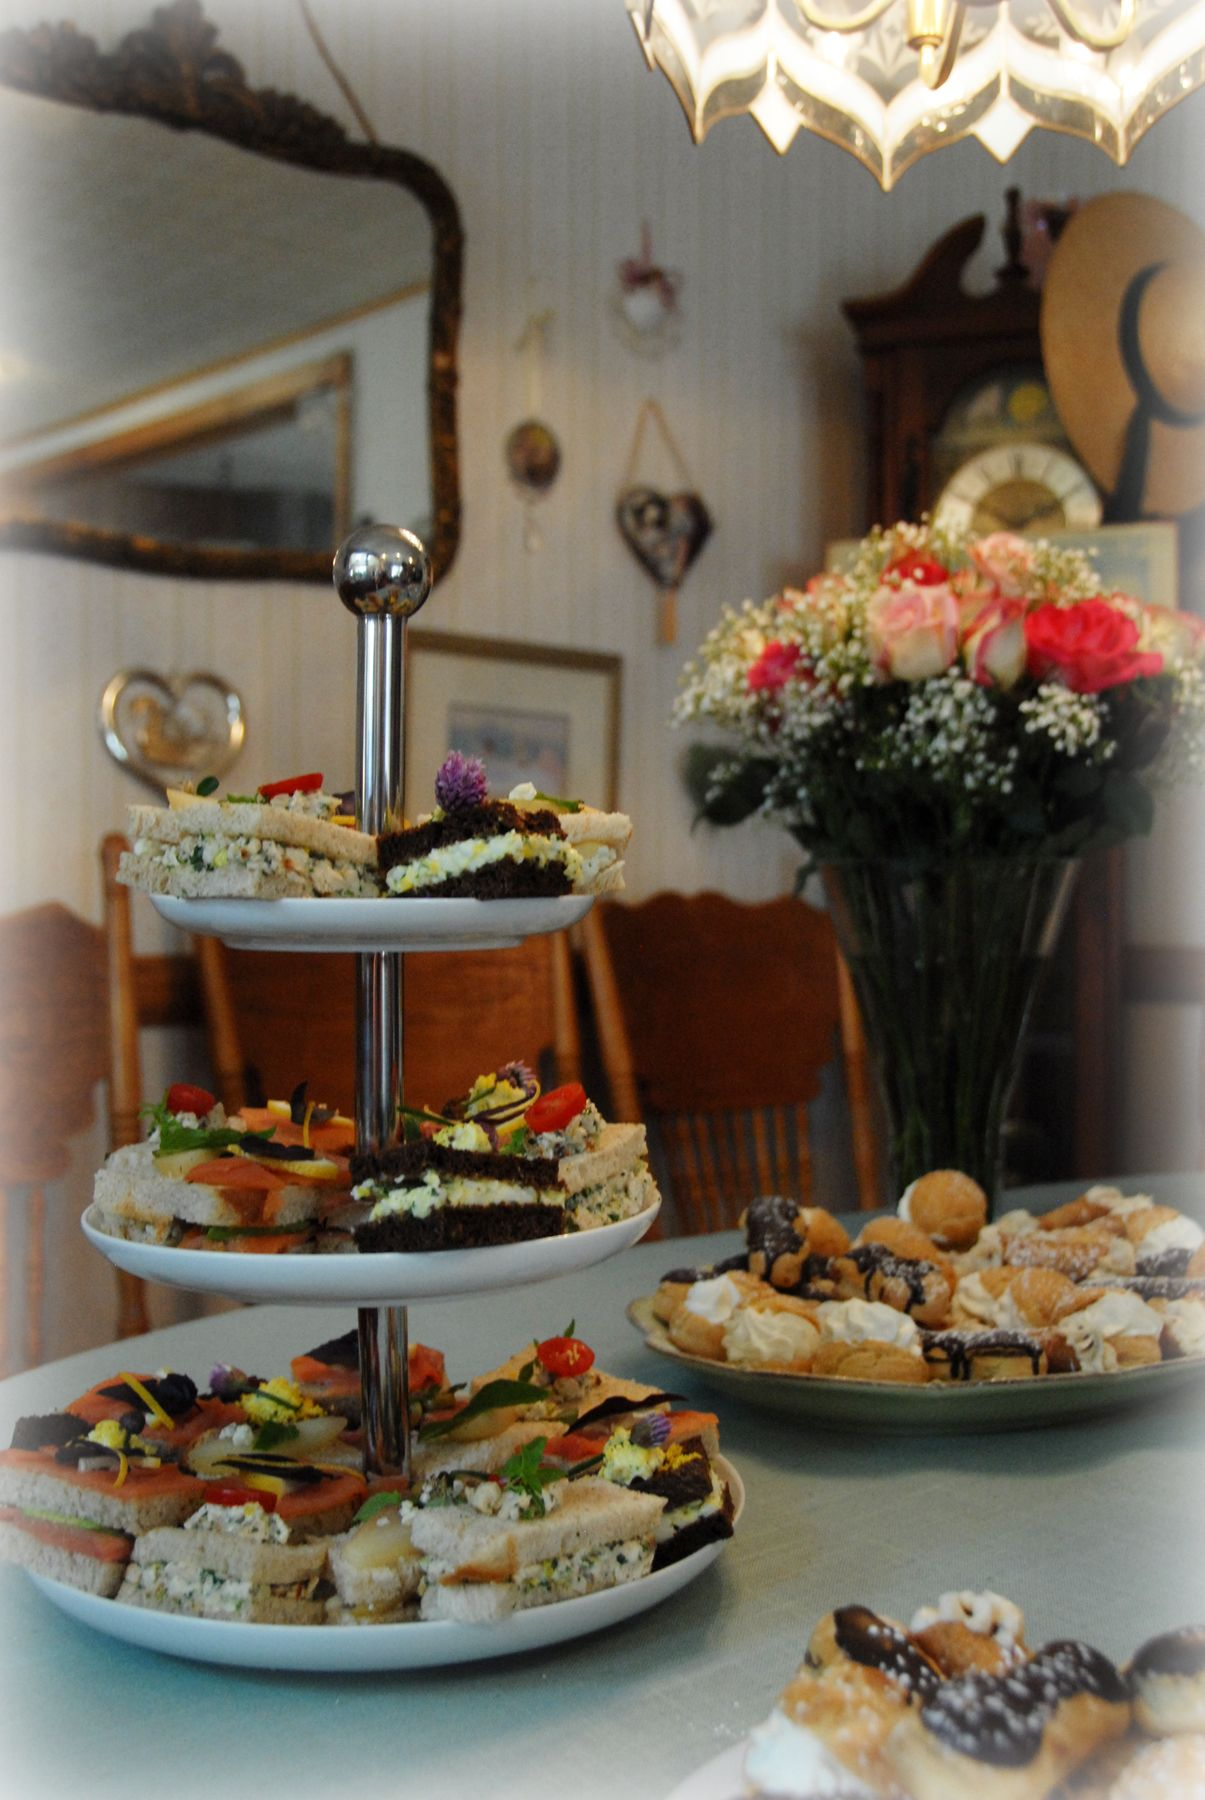 high tea bridal shower petit four sandwiches display french pastries display